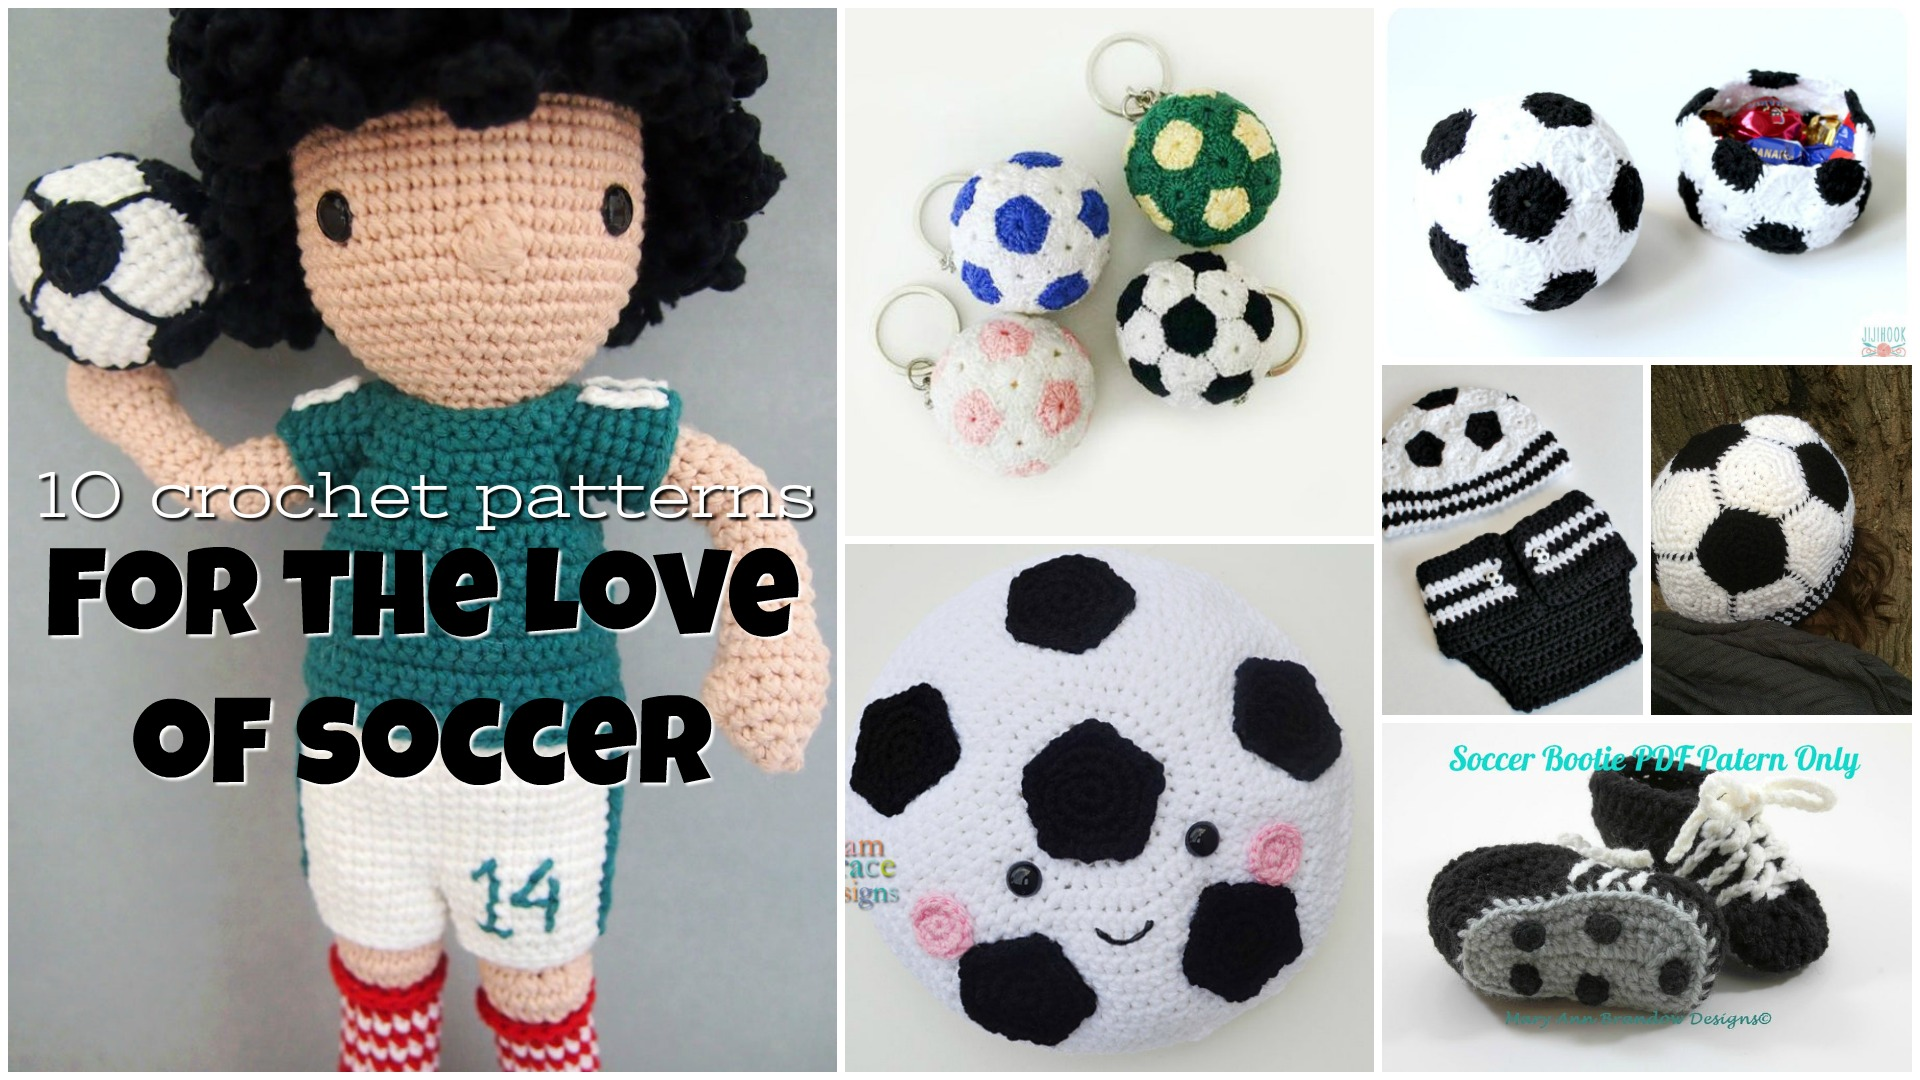 For the Love of Soccer: 10 crochet patterns